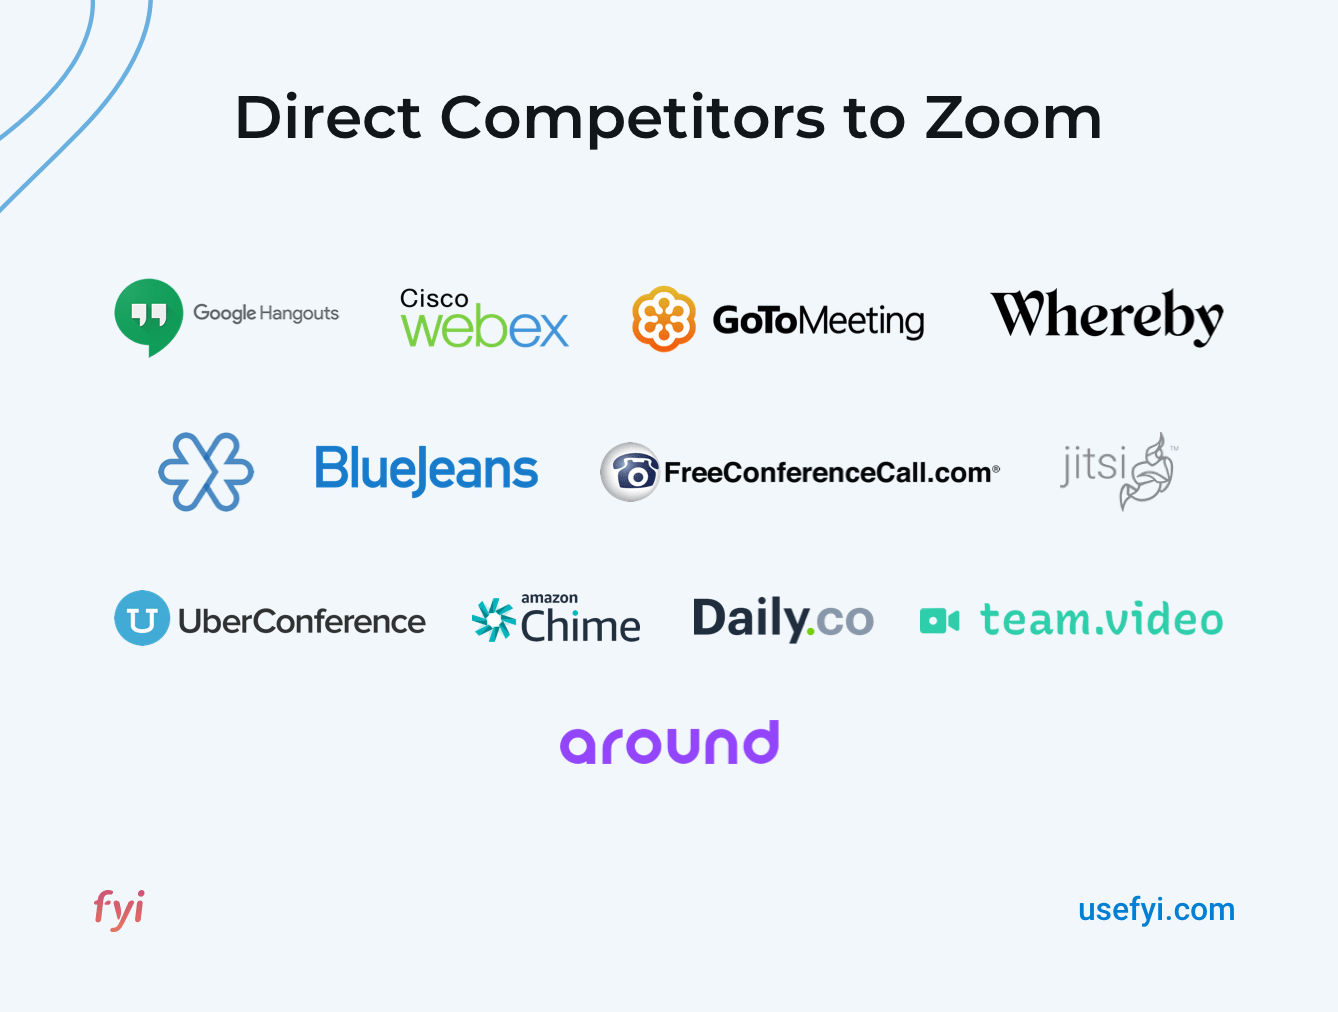 Direct competitors to Zoom